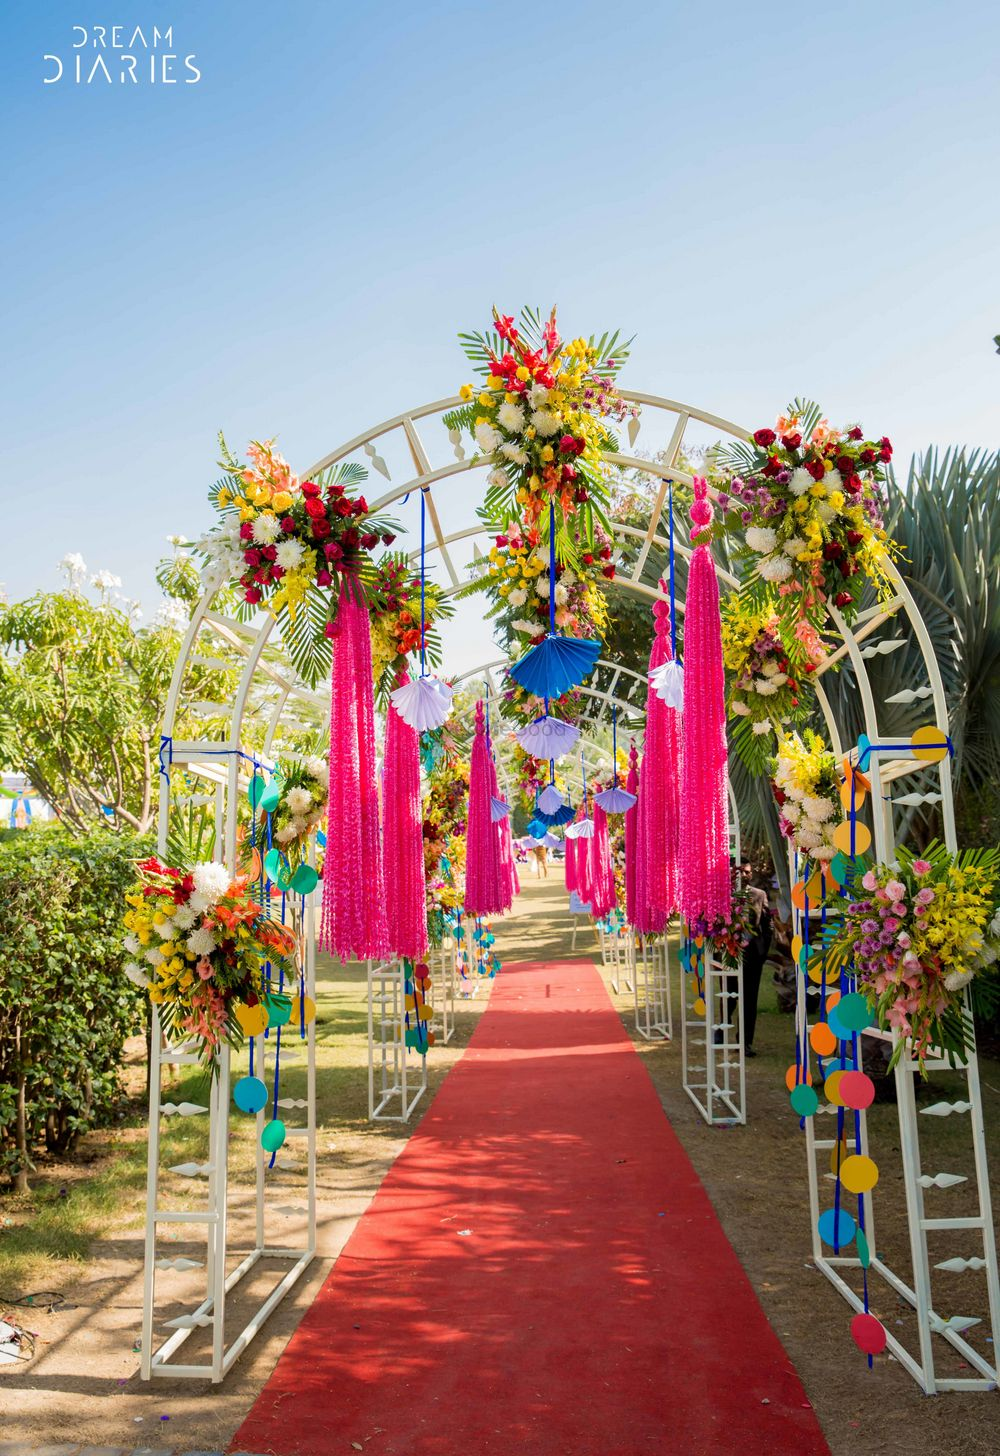 Photo of A quirky archway entrance with floral arrangements and other fancy elements.